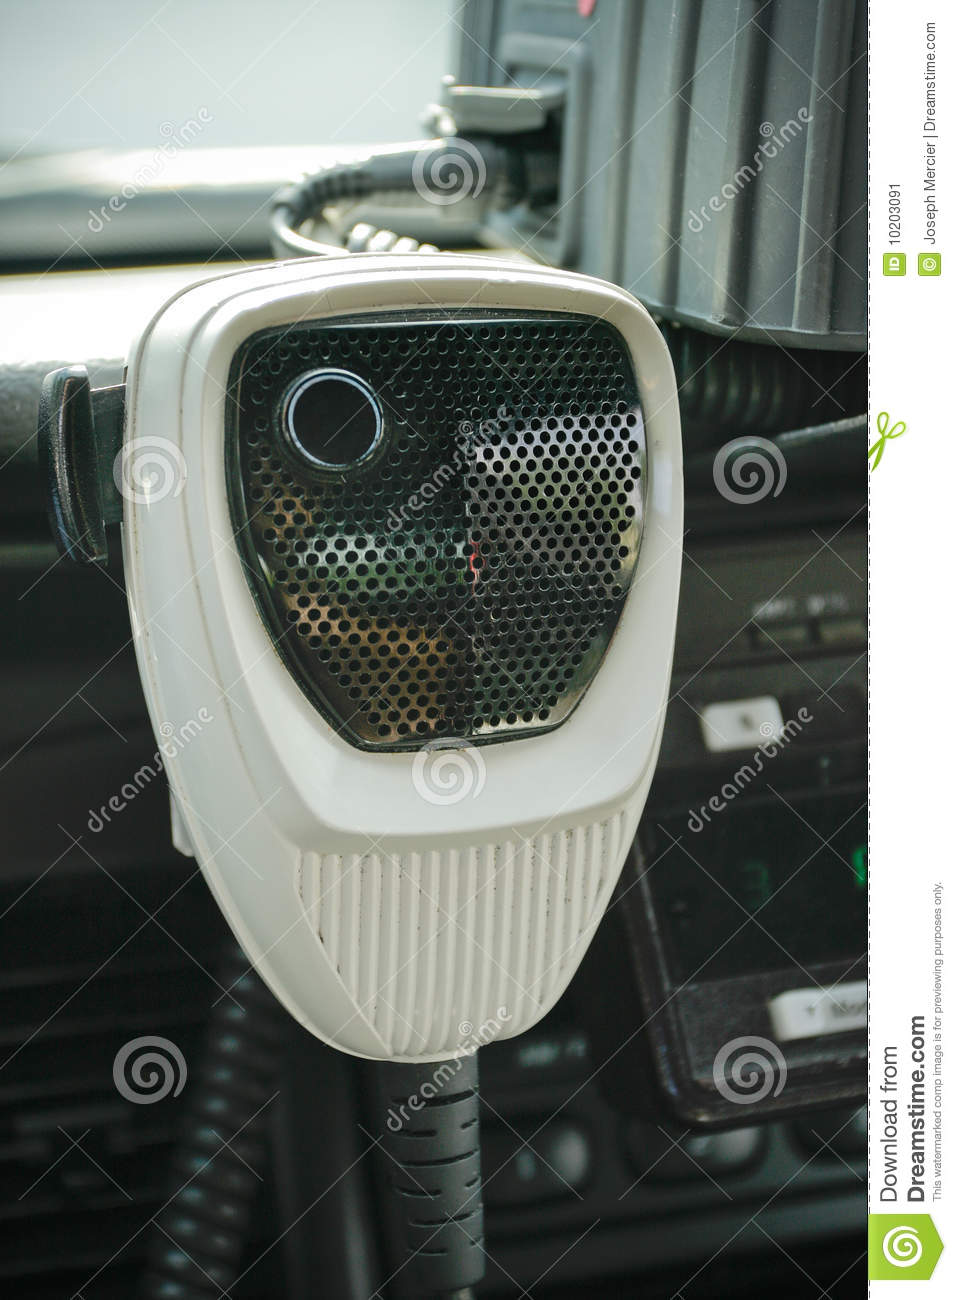 Police Radio Mic >> Police Radio Mic In Car Stock Image Image Of Armed Felony 10203091